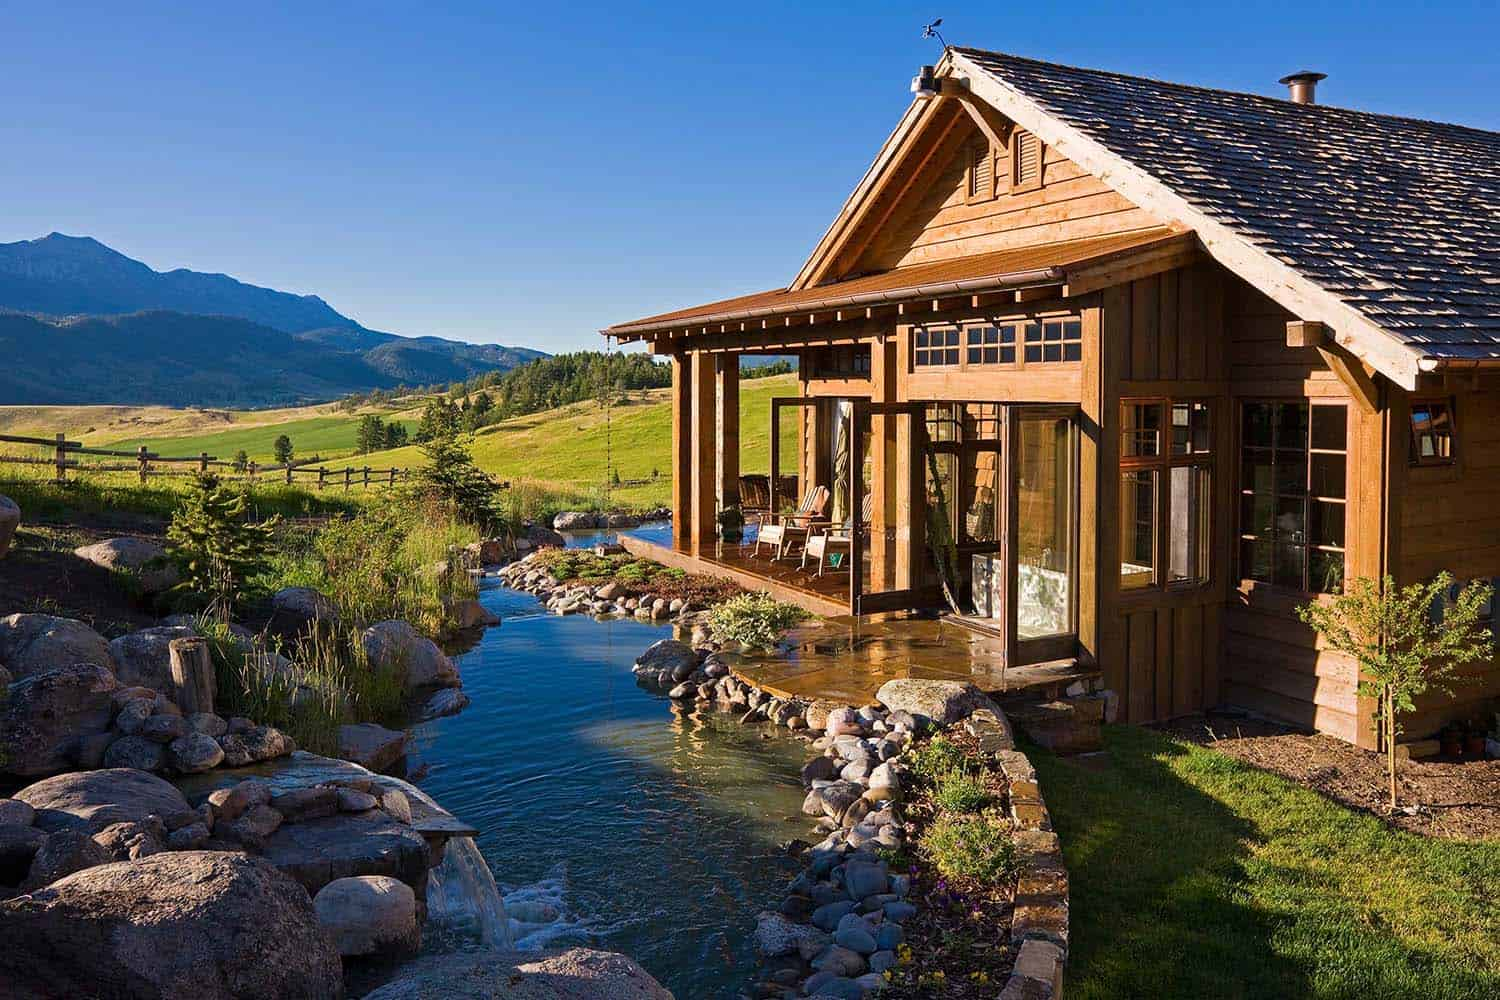 Breathtaking Rustic Retreat With Postcard Views Of The